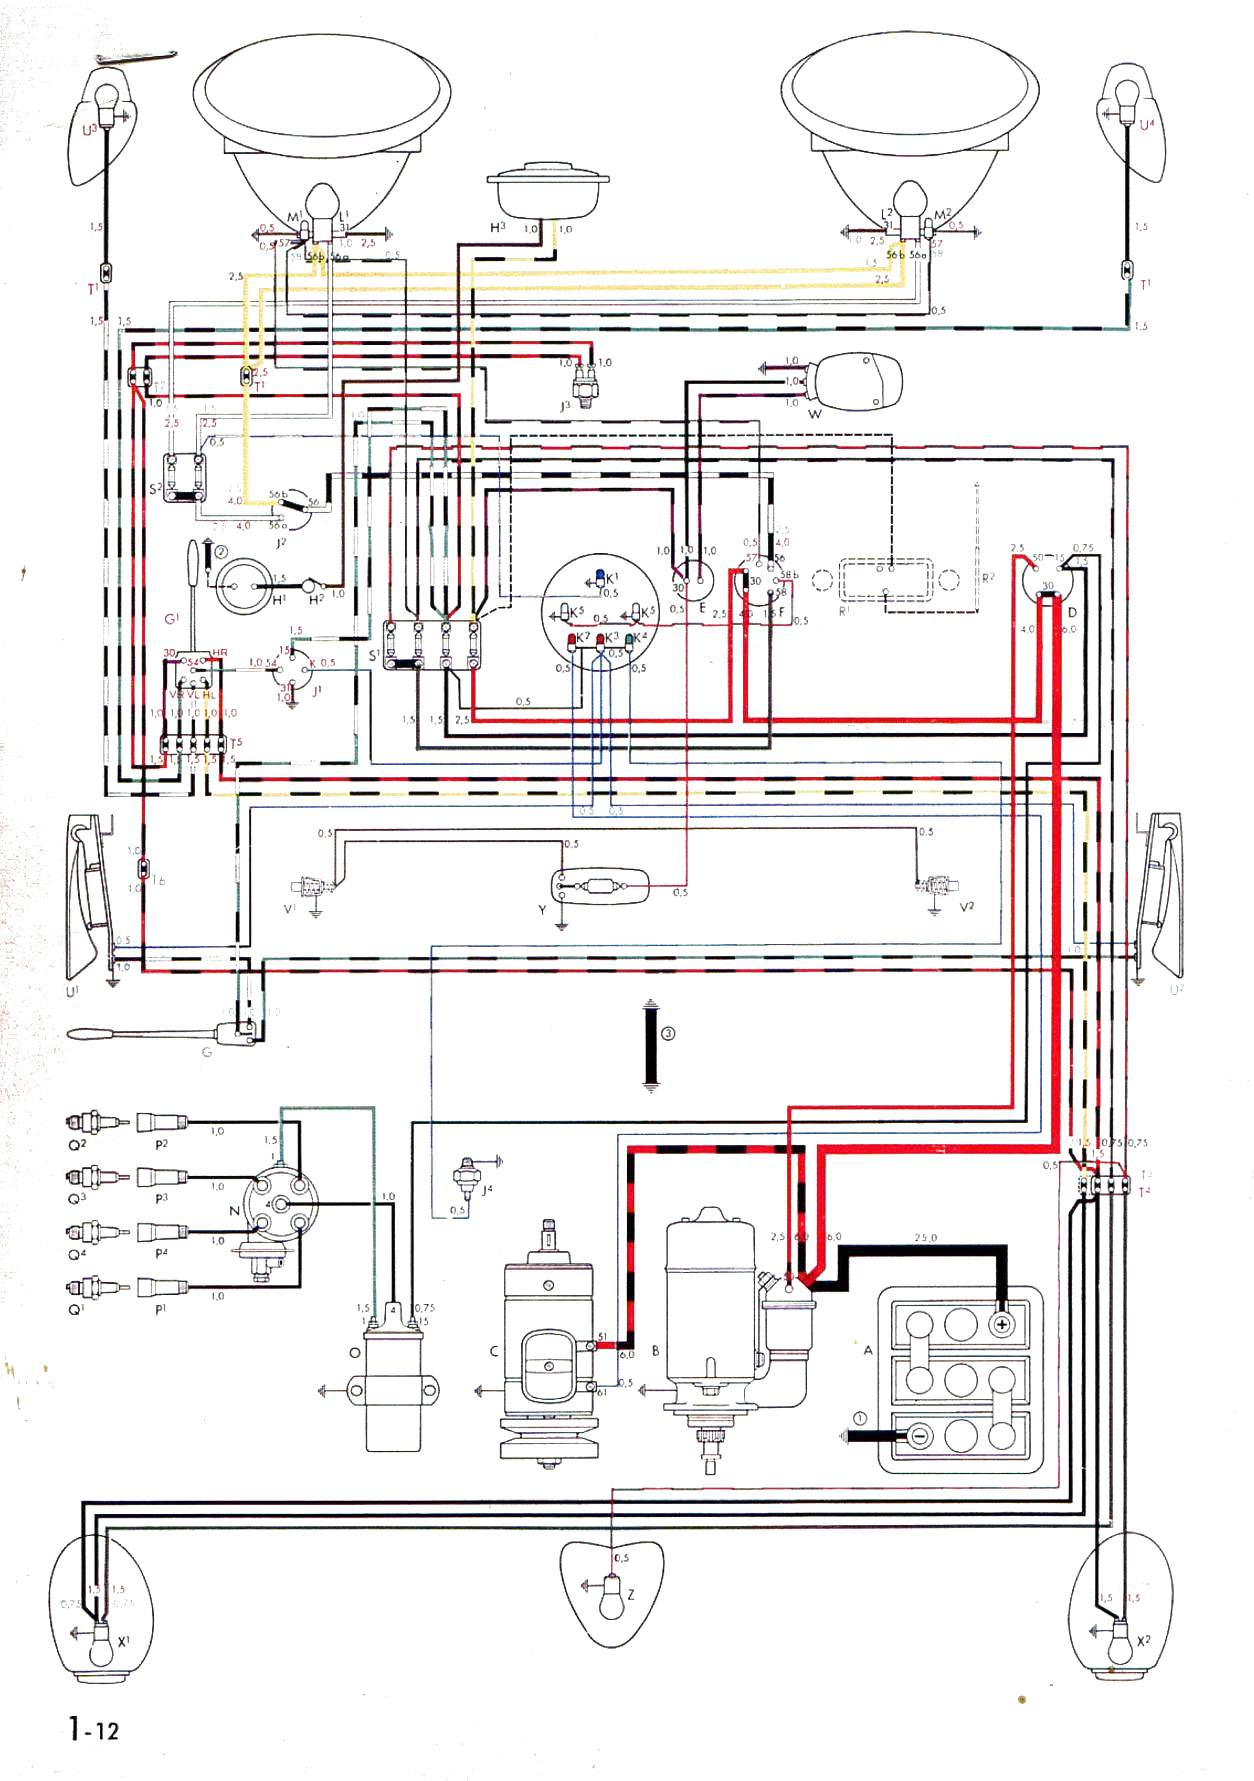 Wiring diagram for 1968 mgb lights fixya wire center vintagebus com vw bus and other wiring diagrams rh vintagebus com wiring diagram for 1968 mustang publicscrutiny